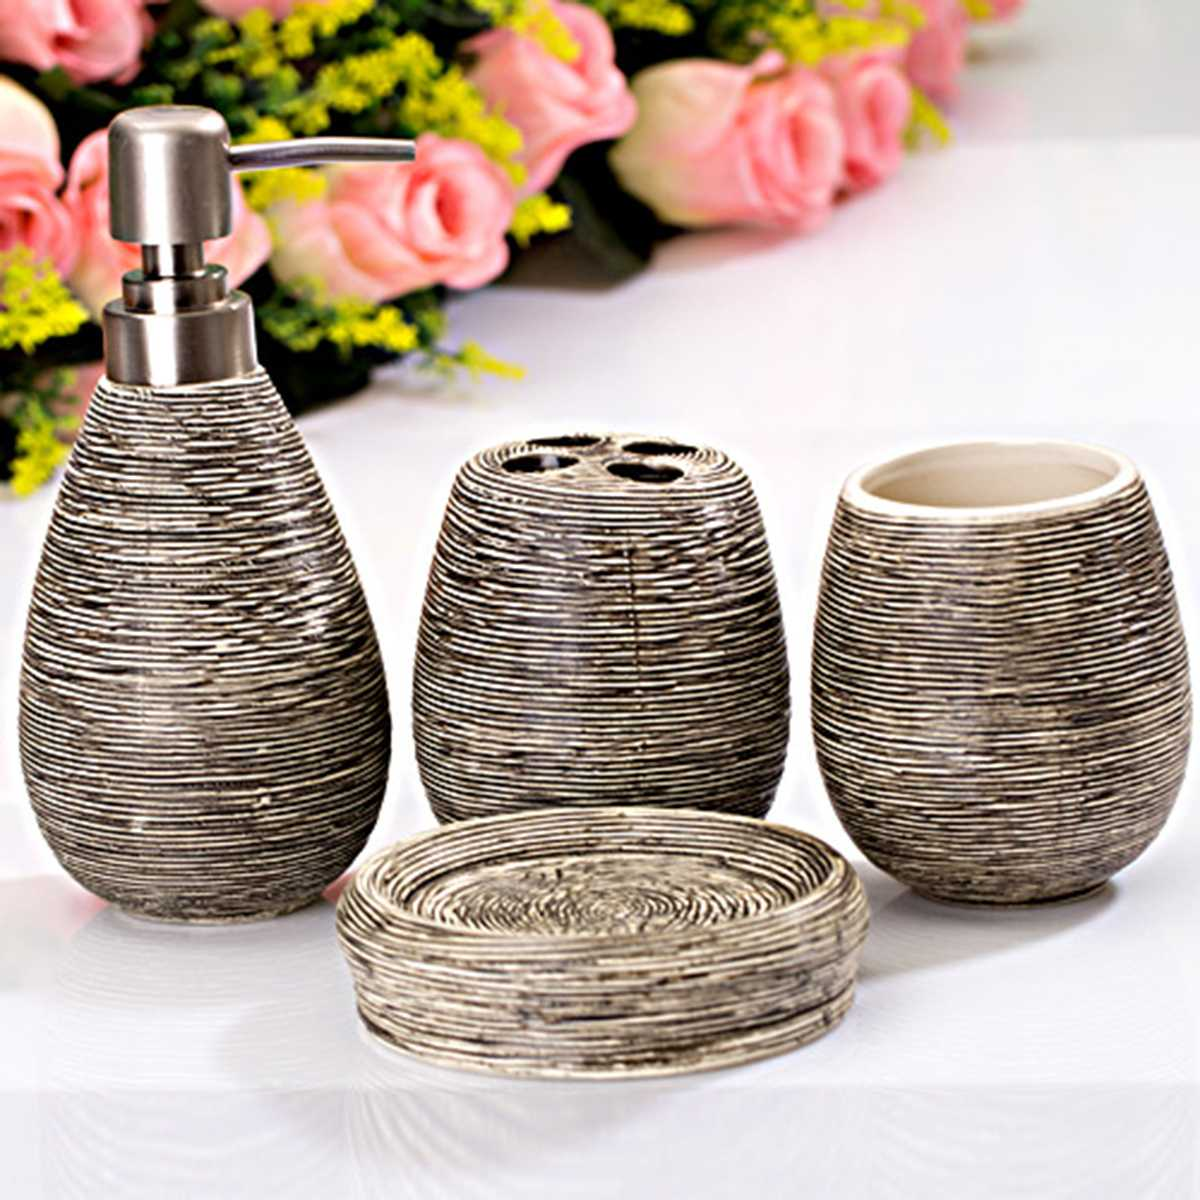 New 4Pcs/Set Ceramic Textural Bathroom Accessory Retro Lotion Dispenser Toothbrush Holder Cup Soap Dish Modern Toilet Home Decor image